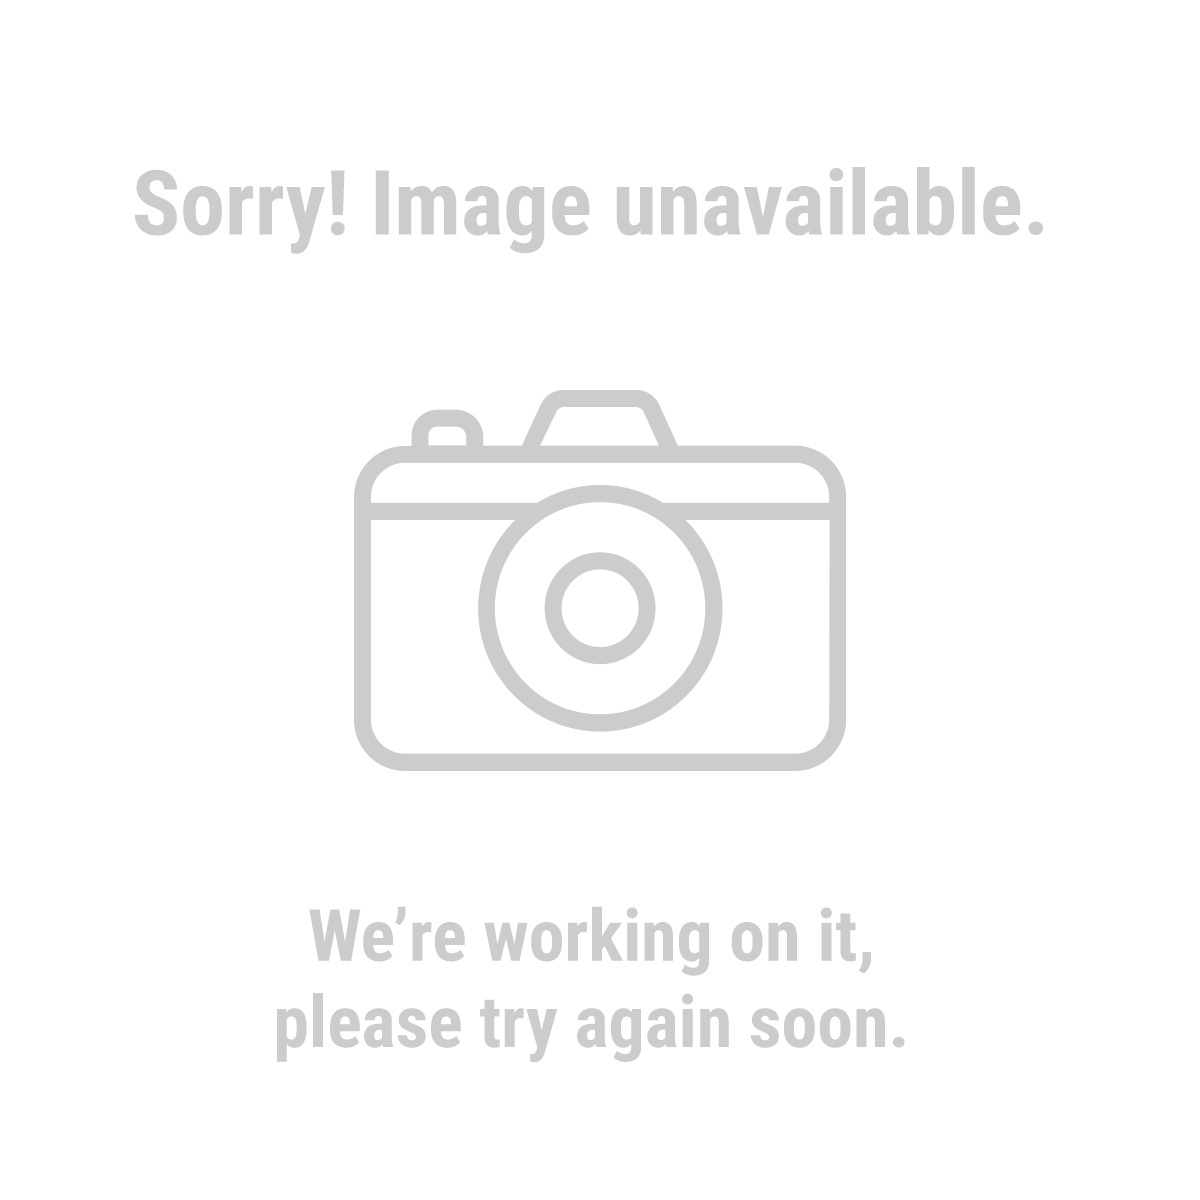 Pacific Hydrostar 68393 620 GPH Submersible Fountain Pump